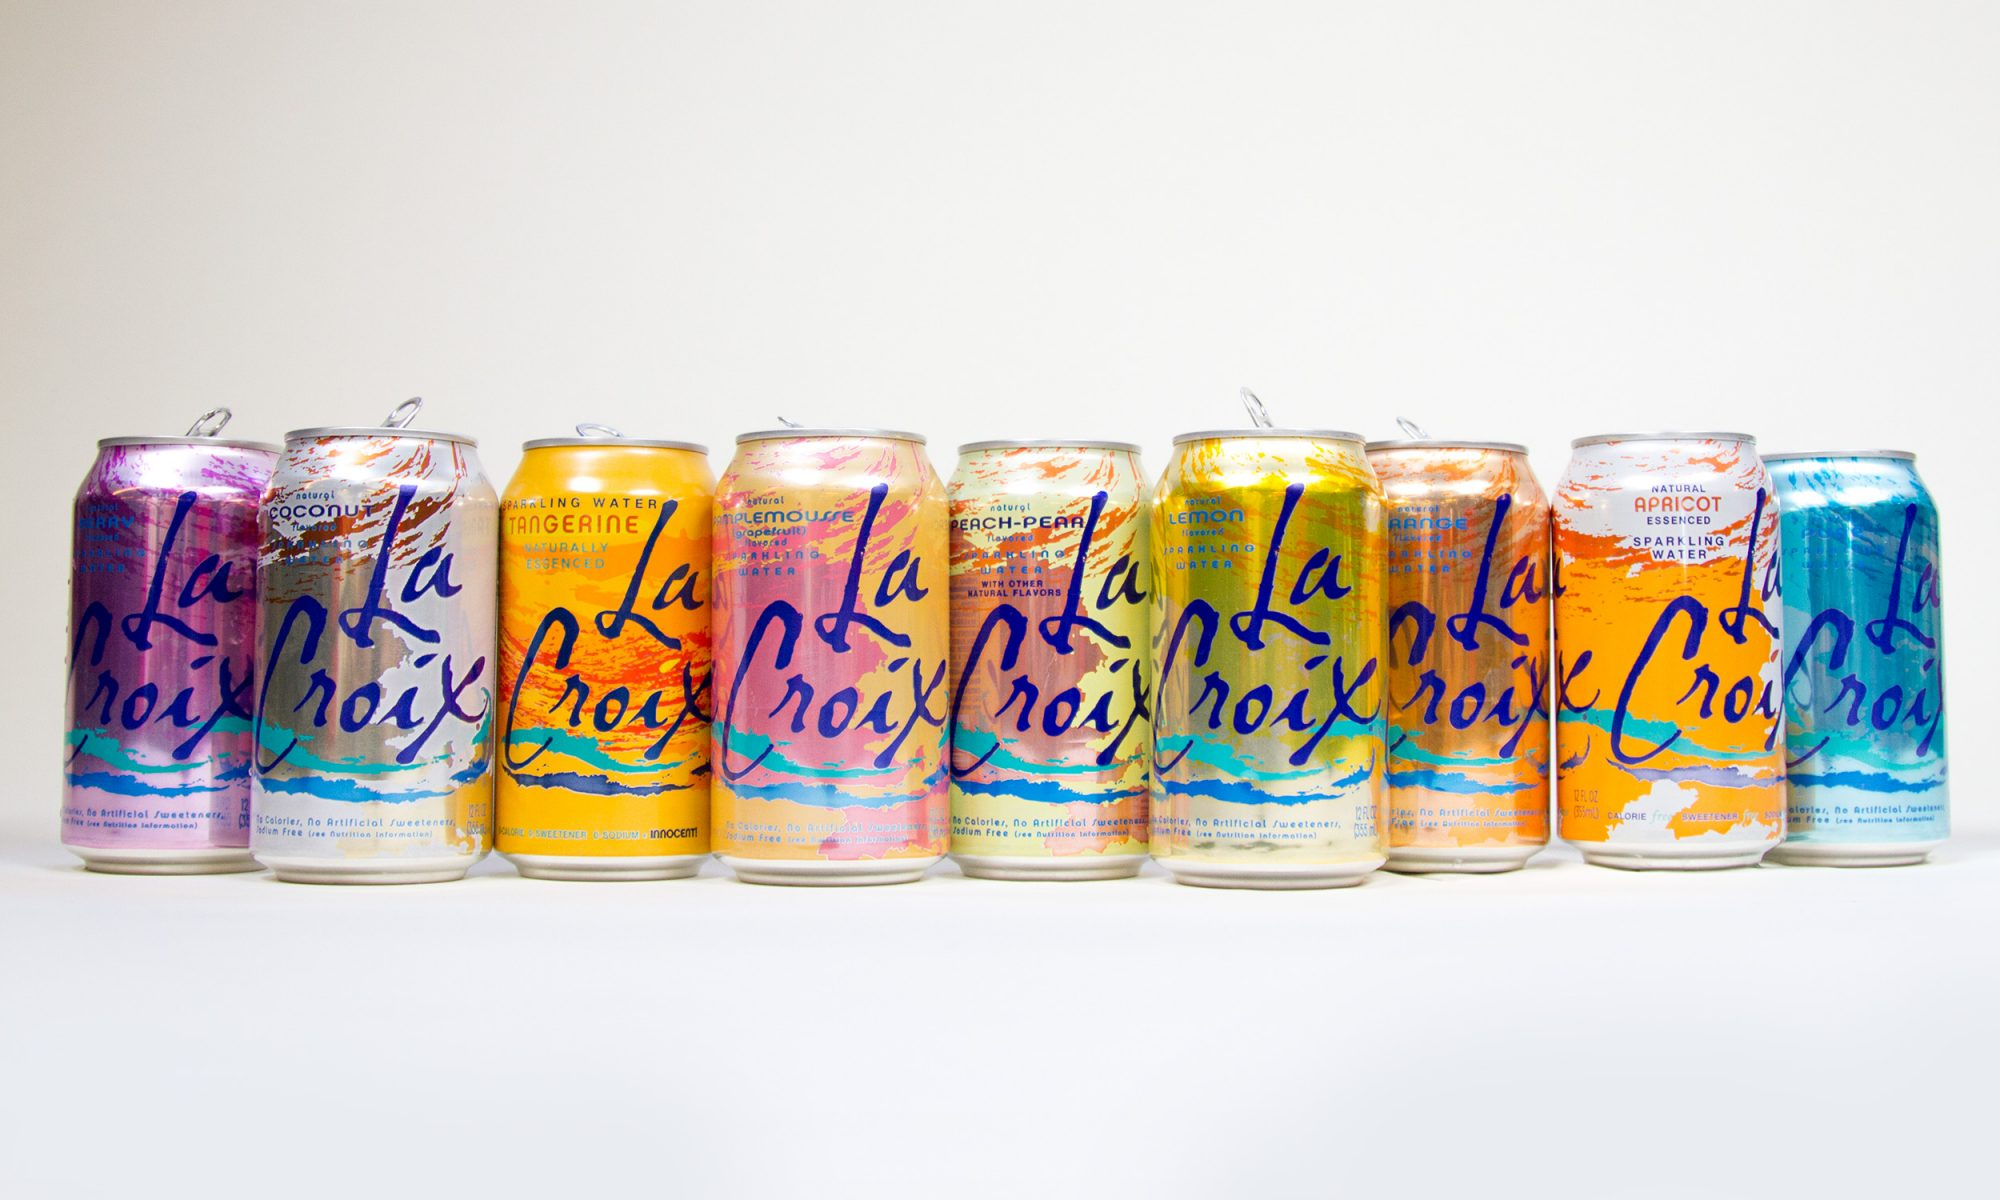 EC: The Best LaCroix Hangover Cures